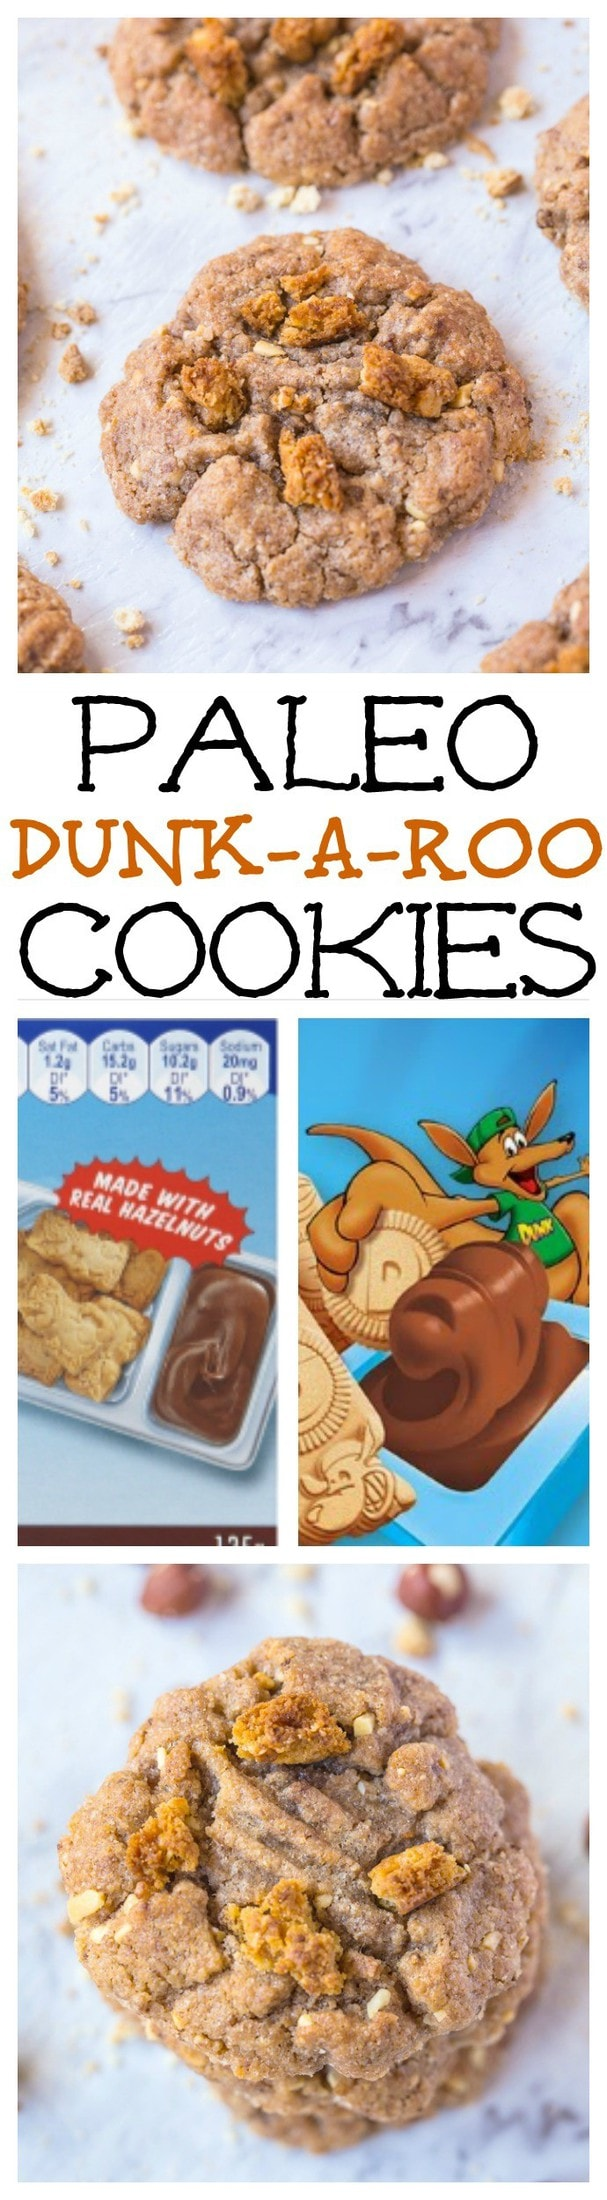 Paleo Dunkaroo Cookies- A childhood treat gets a healthier cookie makeover! Easy and delicious! {vegan, gluten free, grain free}